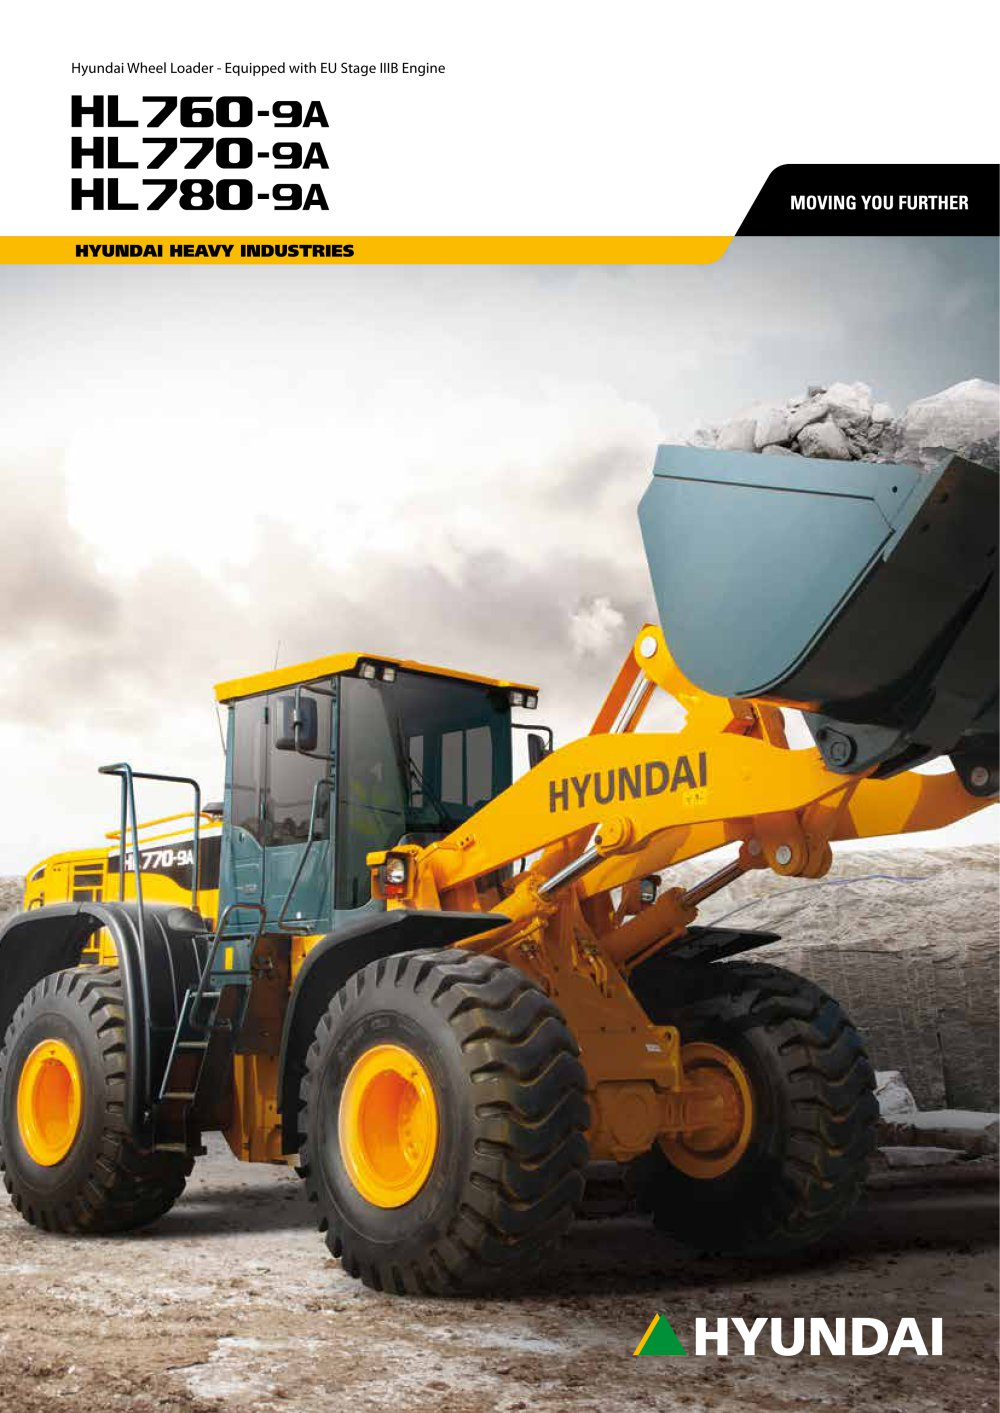 HL780-9A WHEEL LOADER - 1 / 12 Pages